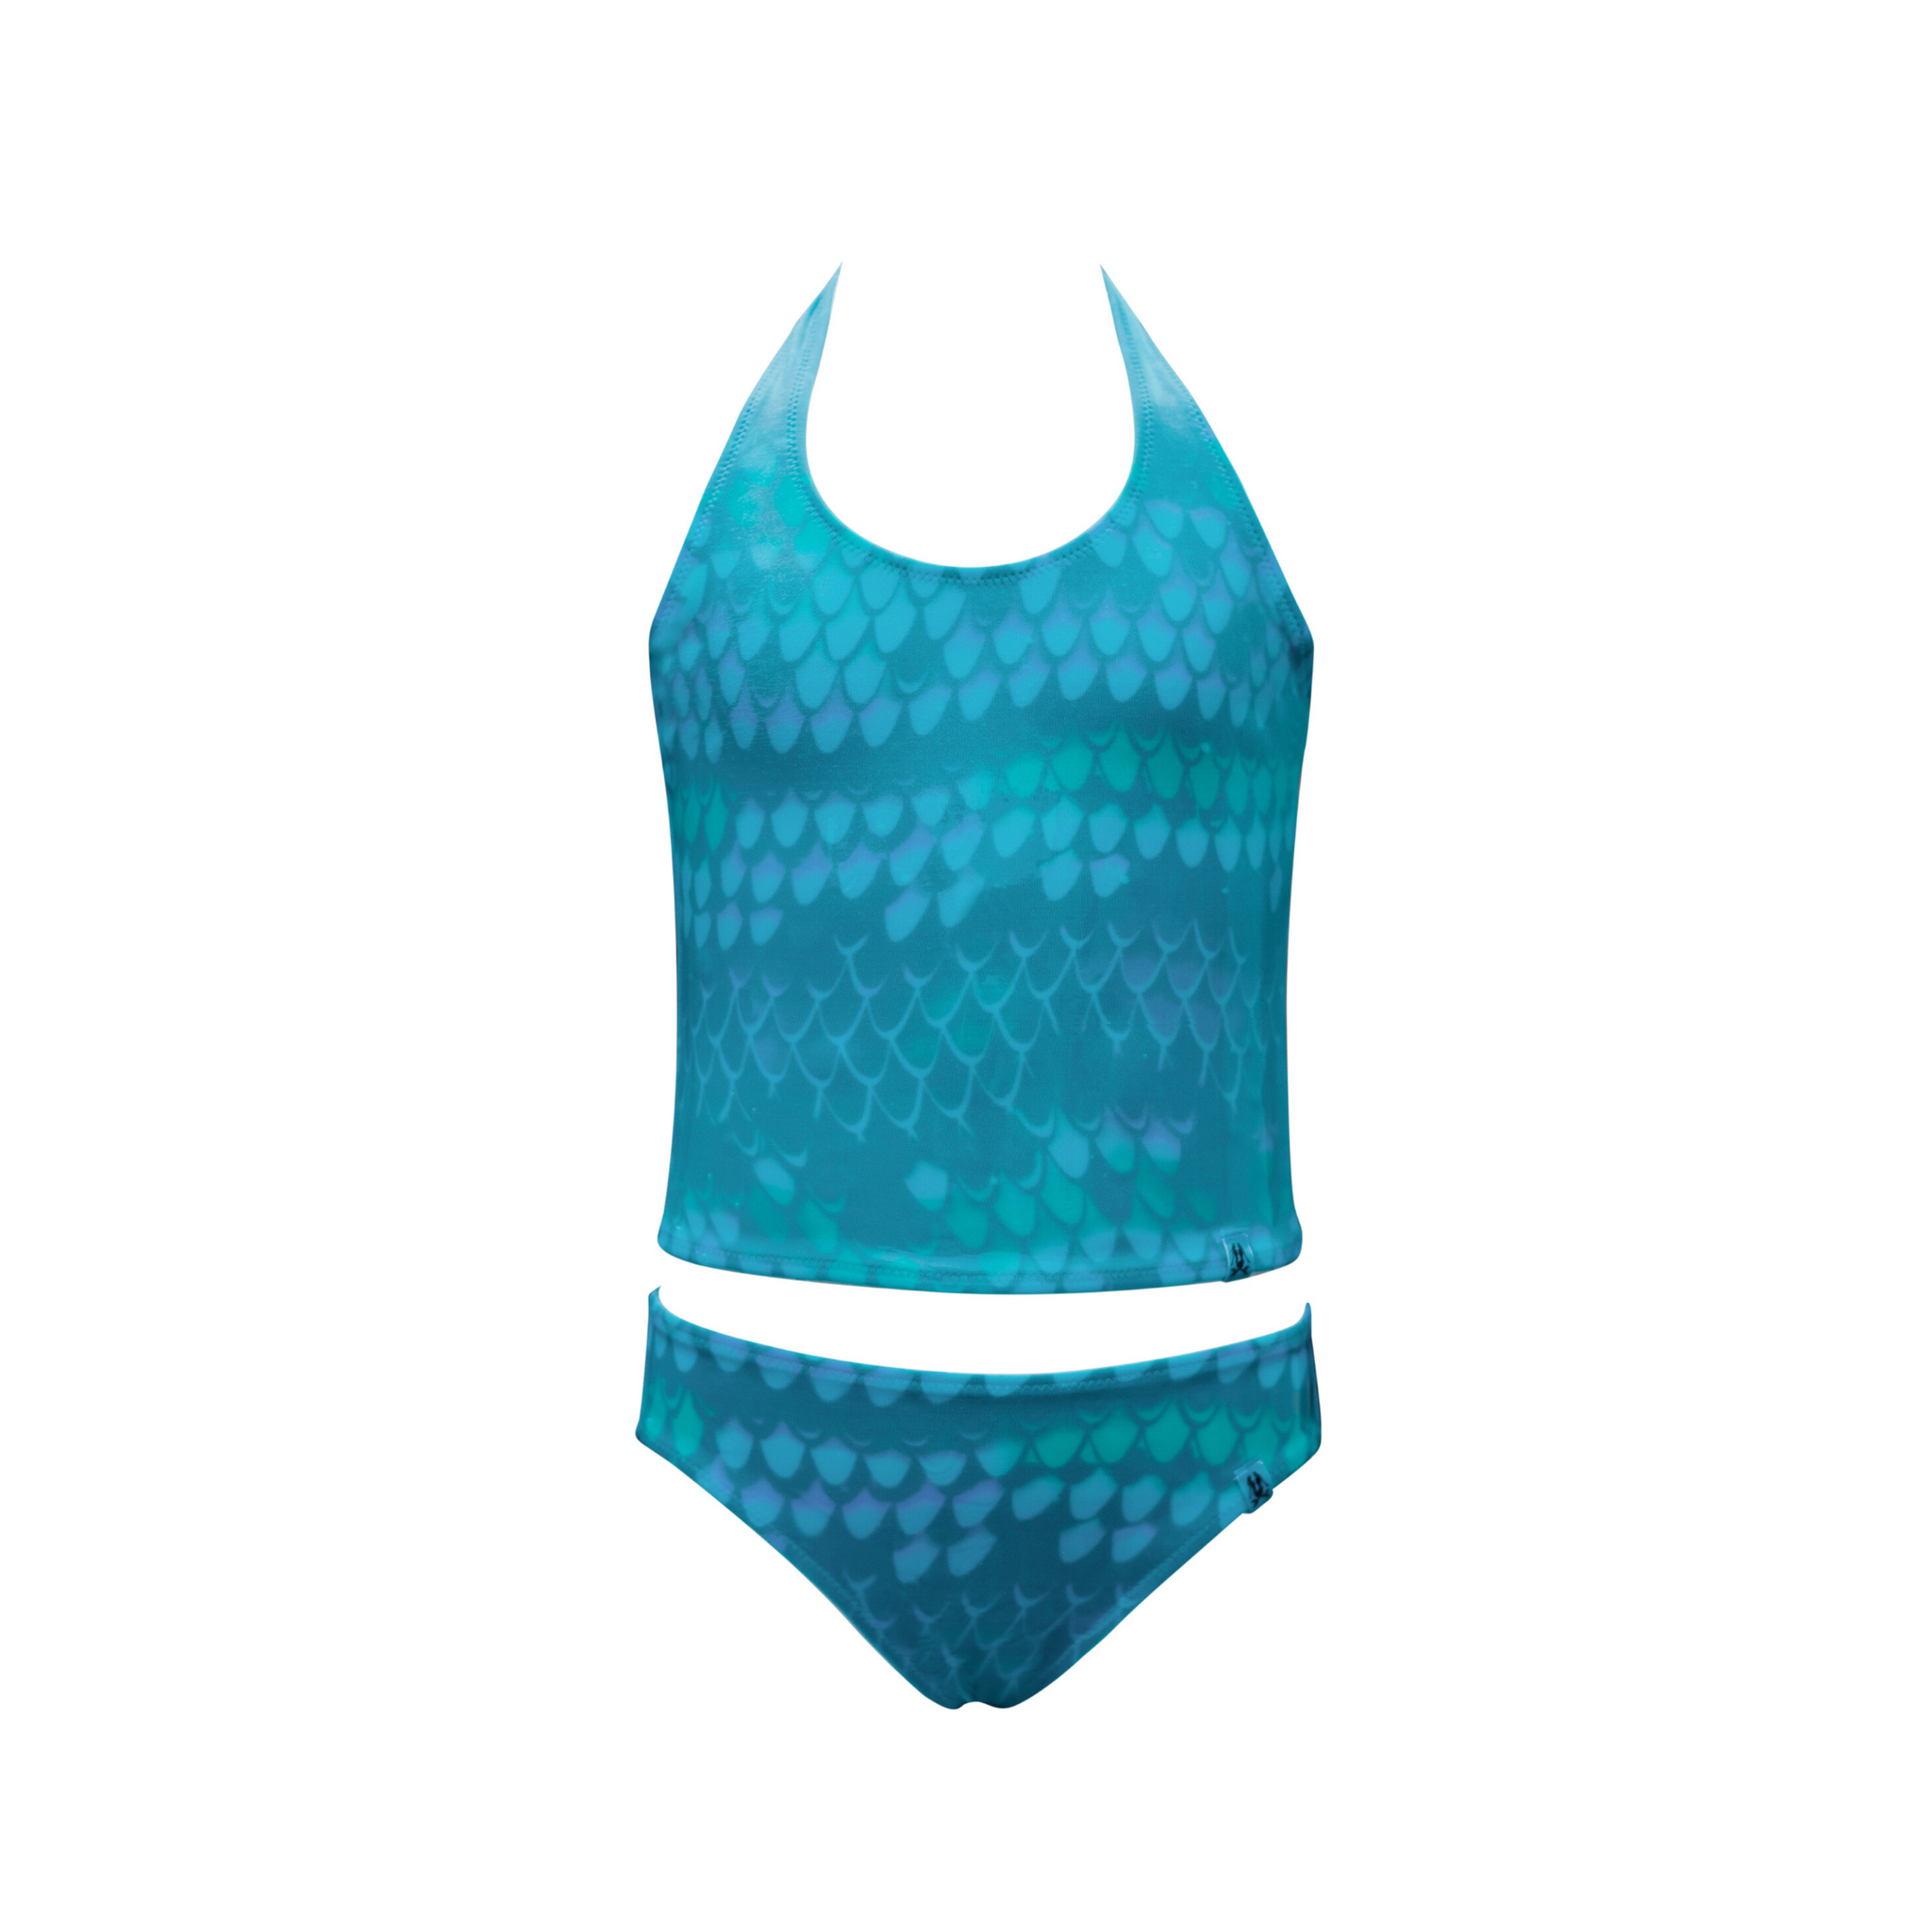 This is an aqua blue tankini for girls with a halter neck top and plain brief bottom. This image shows the swimwear when it is wet as a hidden pattern of what look like scales on a mermaids tail is revealed when in water.